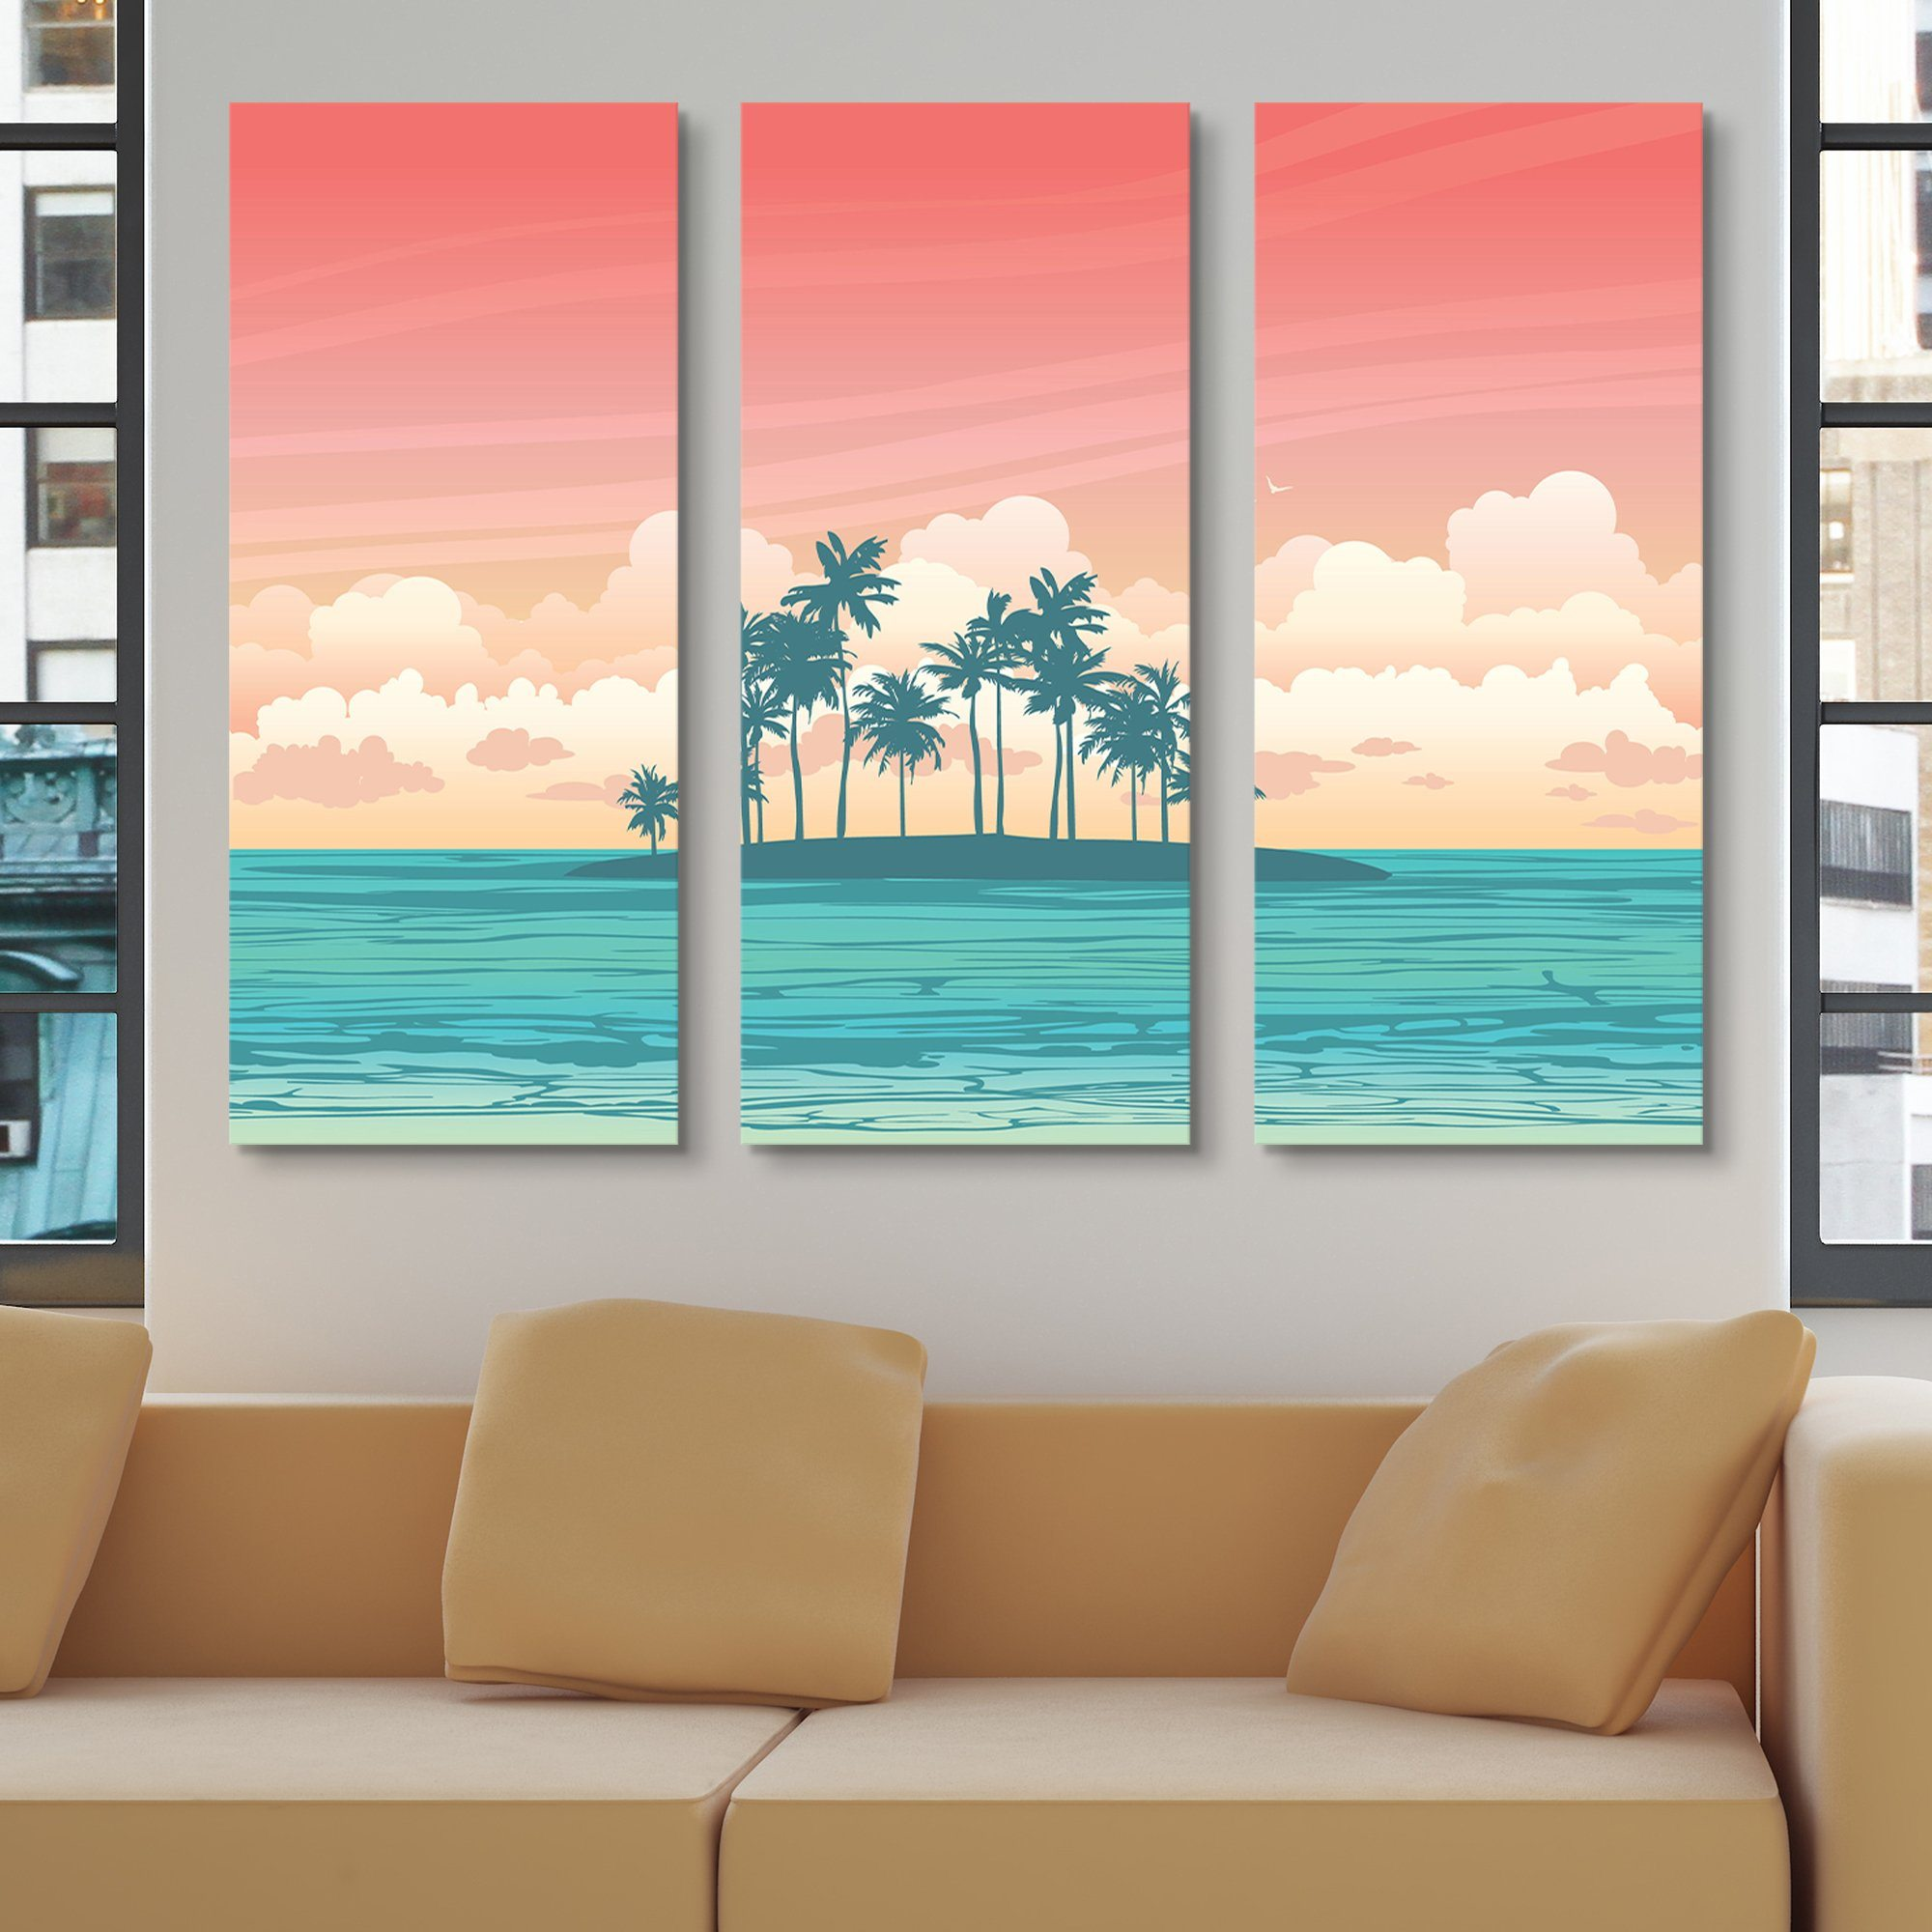 3 piece Tropical Island wall art